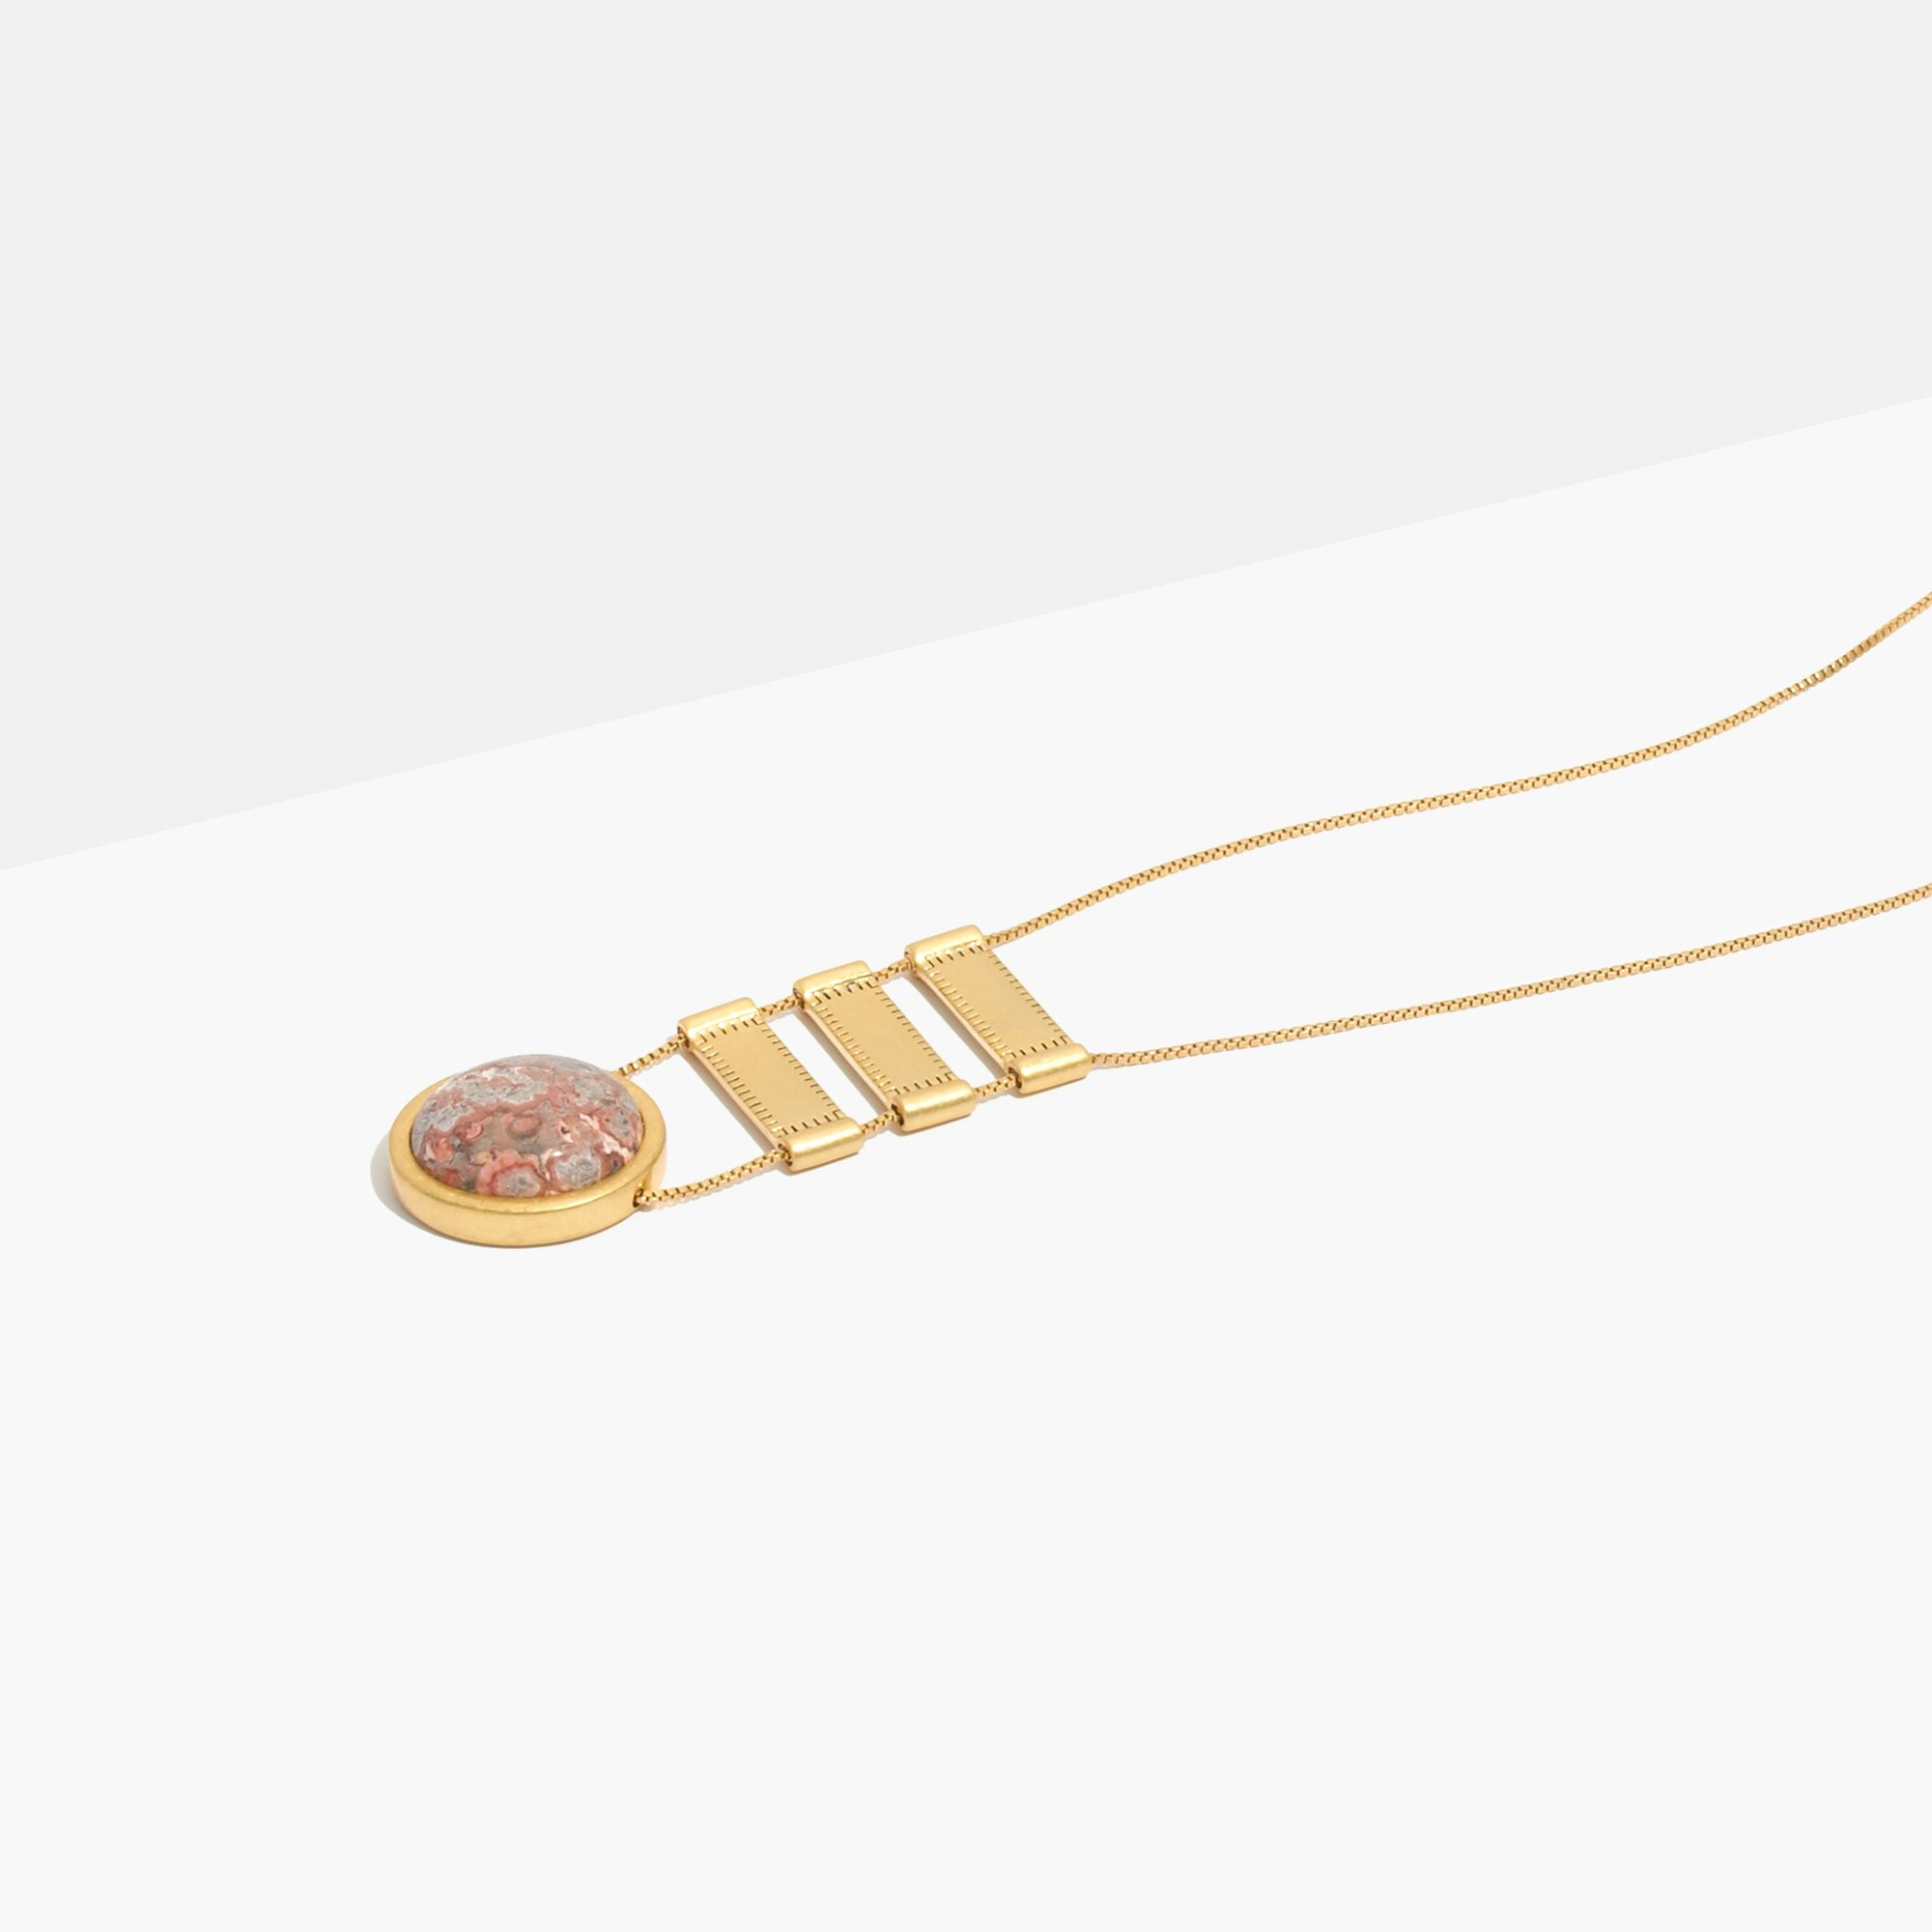 gold necklace by tier katsumi cornflake and heavy pin pearls chain plated alirussellcollection